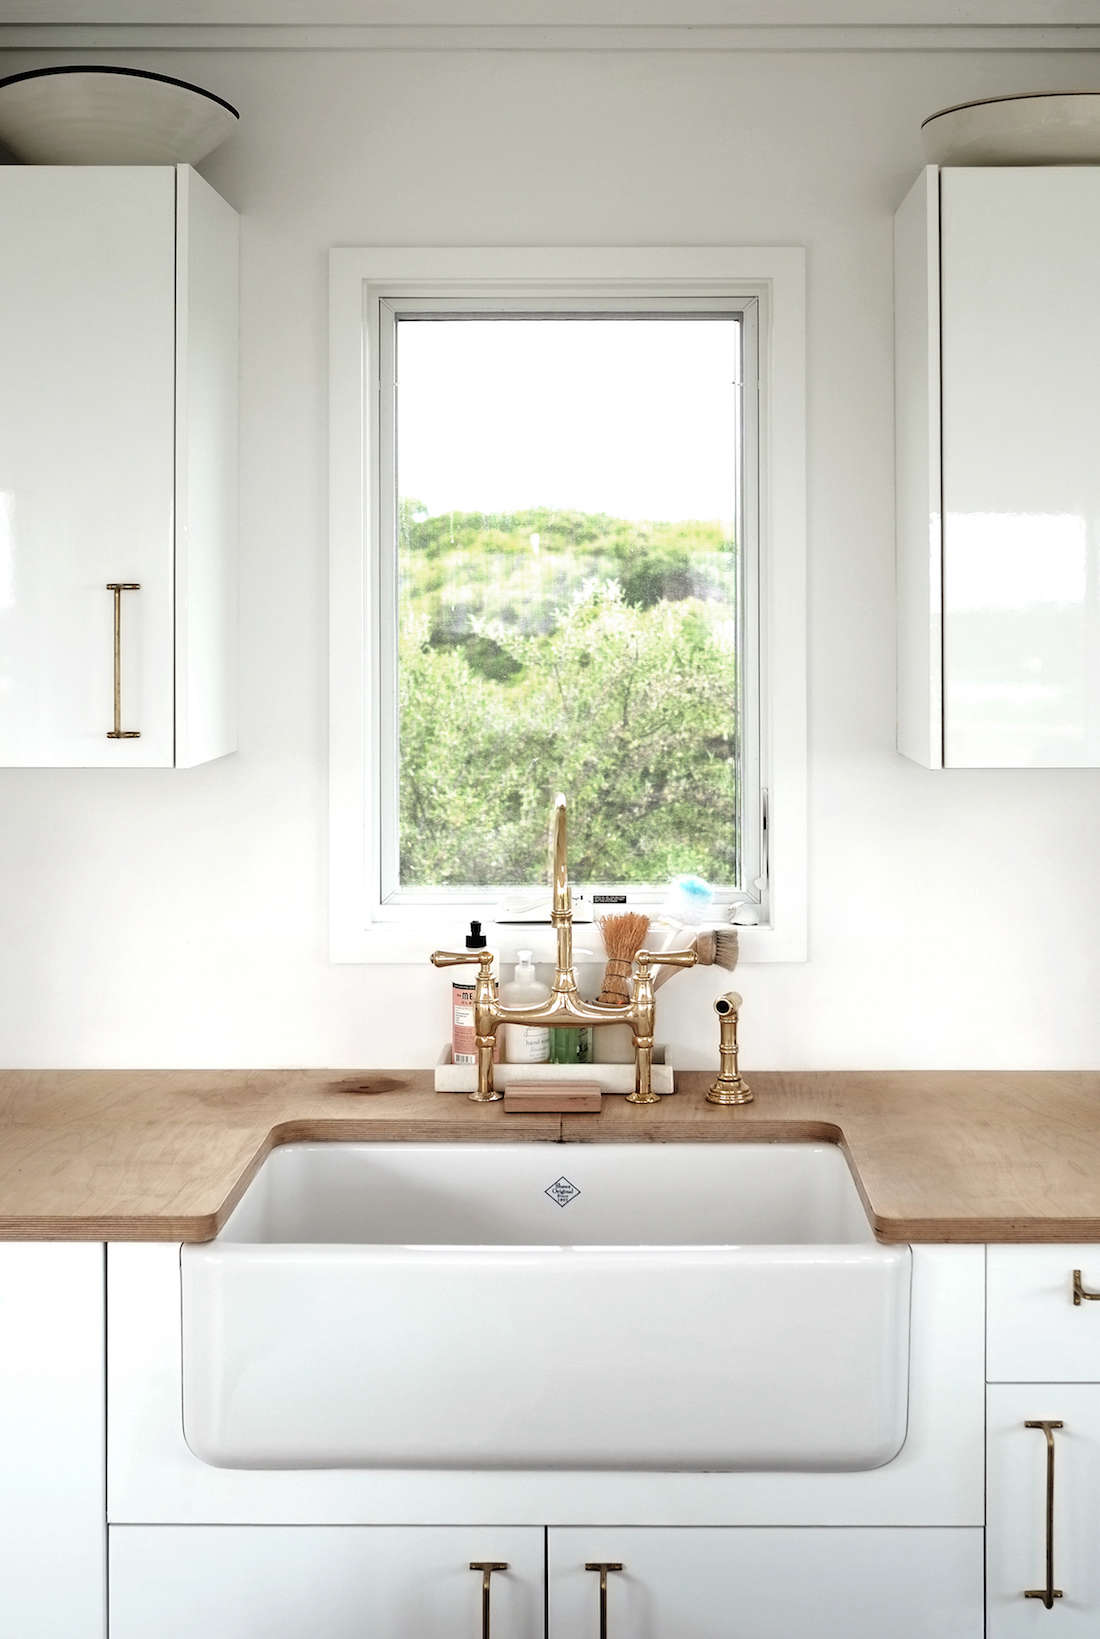 The kitchen countertops are marine-grade Baltic birch plywood, which were intended as a placeholderbut eventually won over the owners. The brass kitchen faucet and apron sink are both from Rohl. A single kitchen window frames a view of the surrounding spruce and sumac trees.